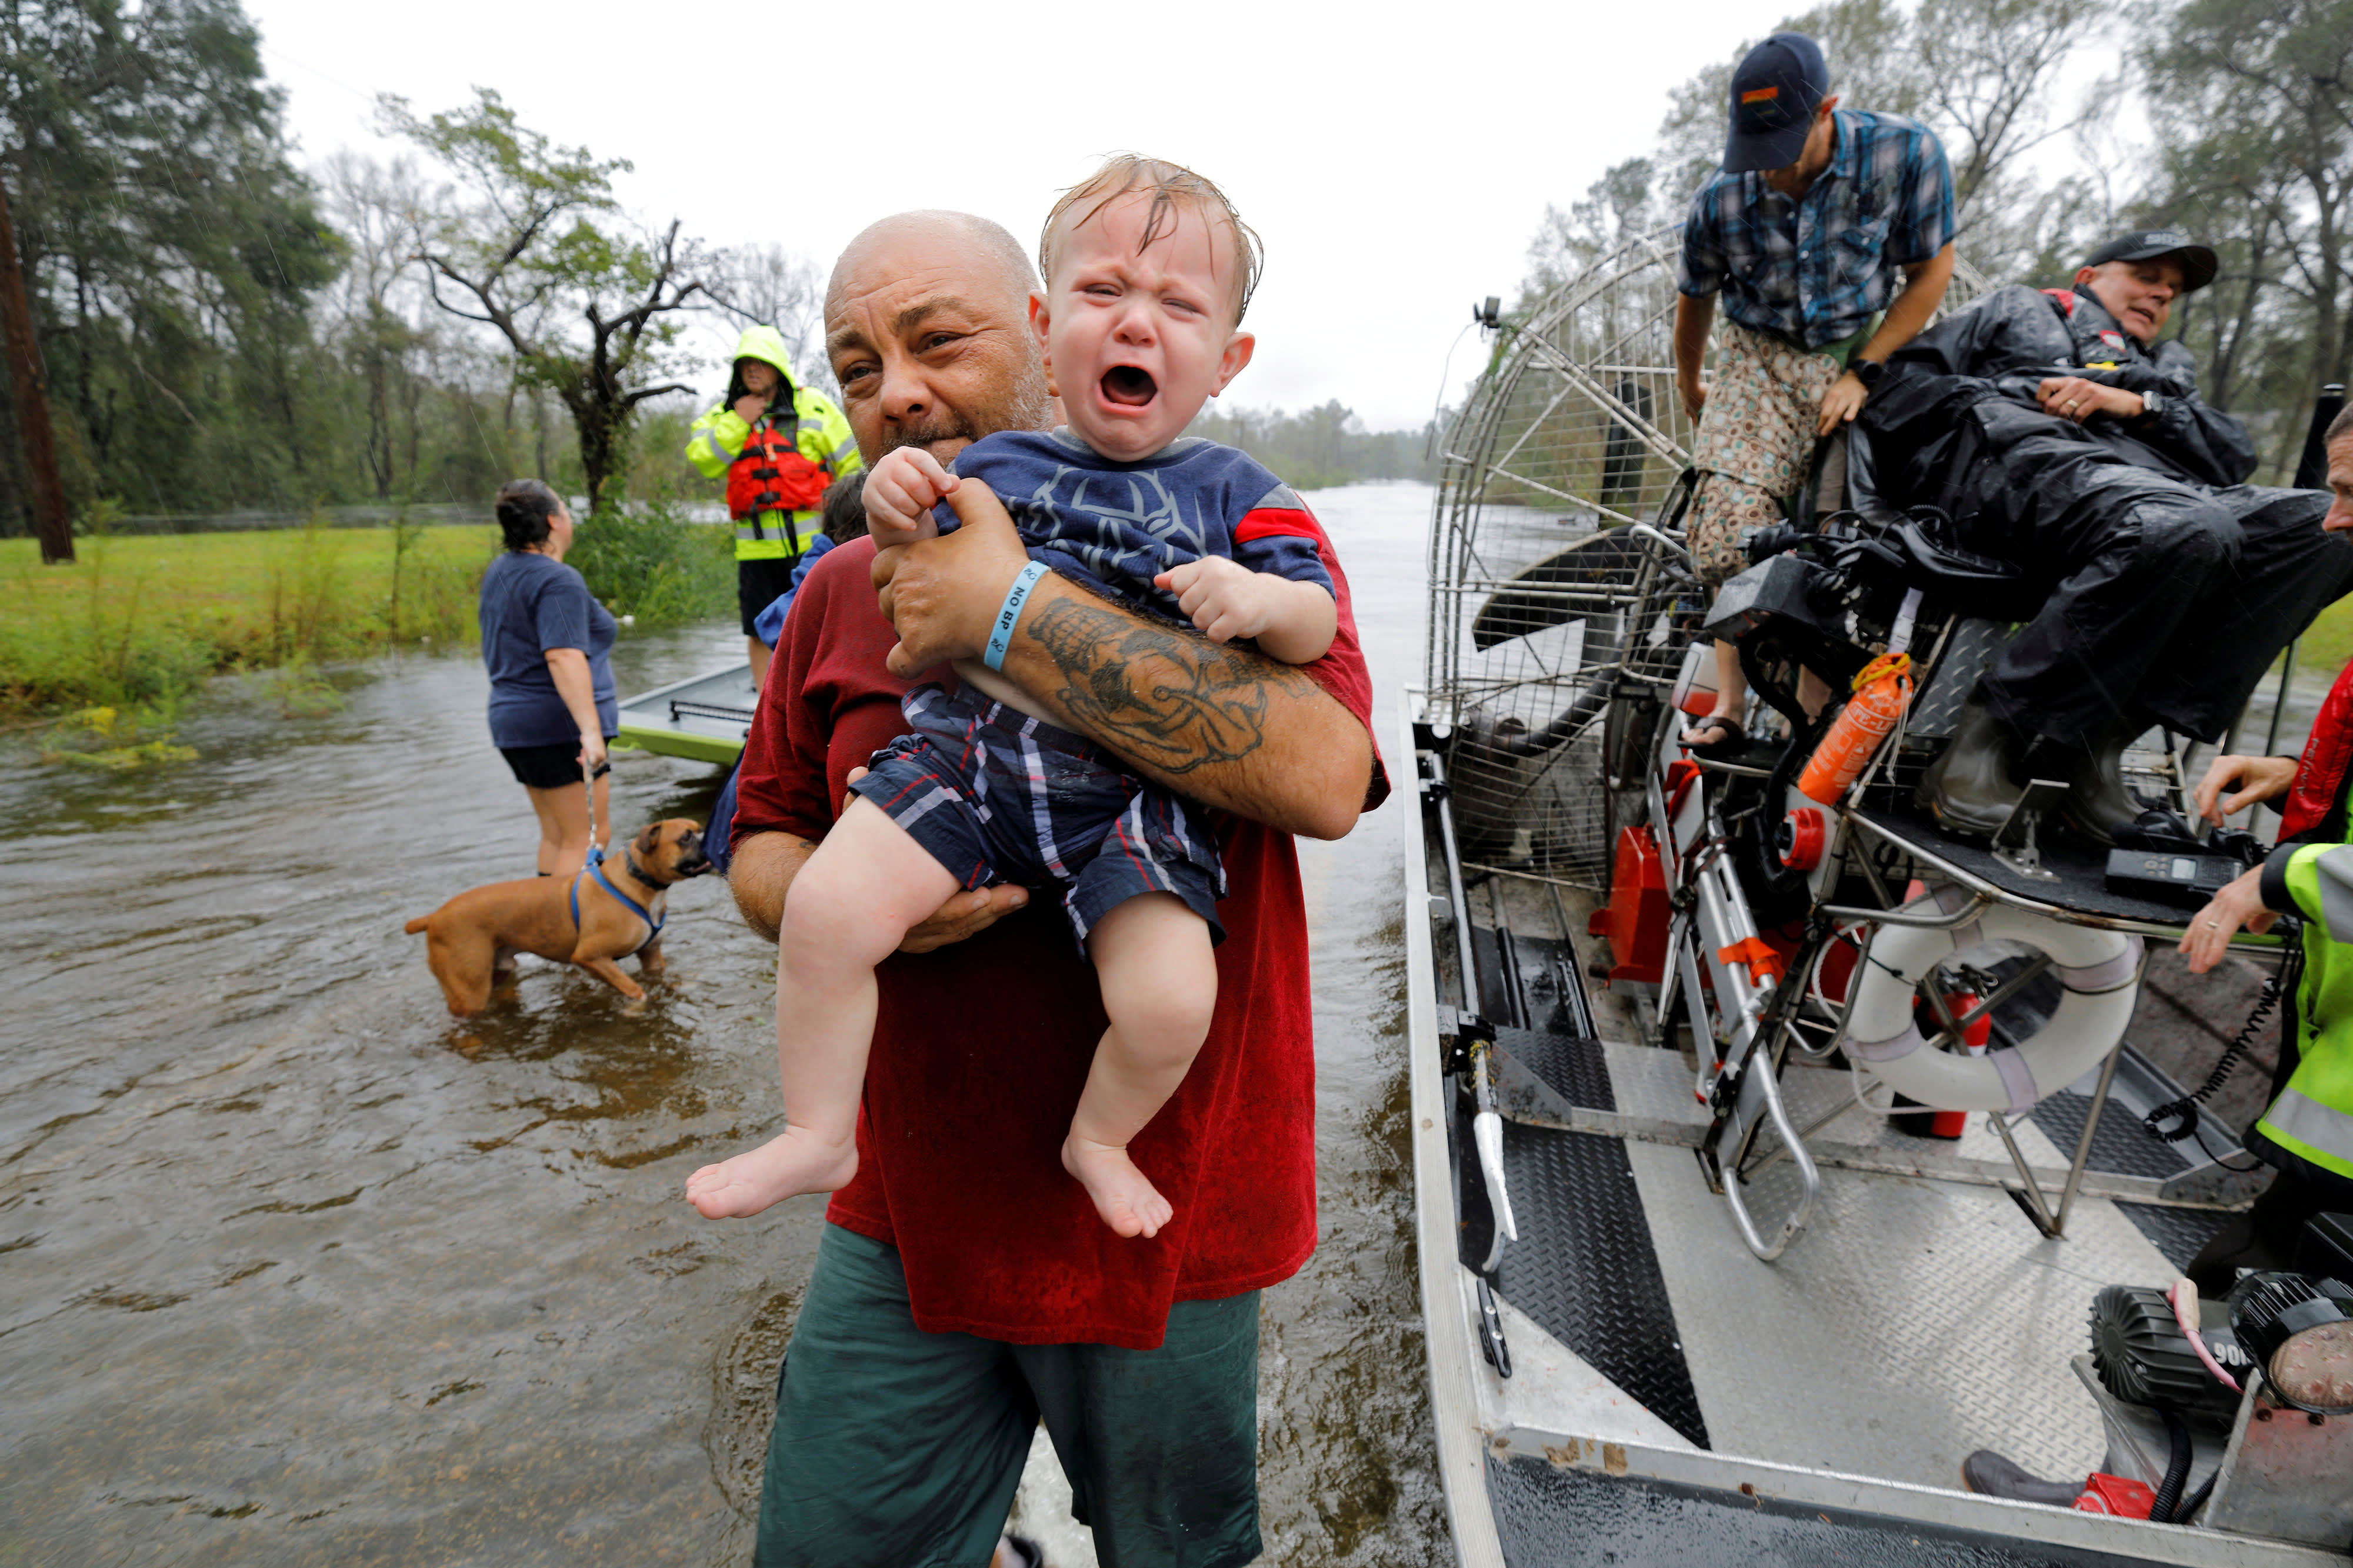 Worst flooding yet to come for waterlogged Carolinas